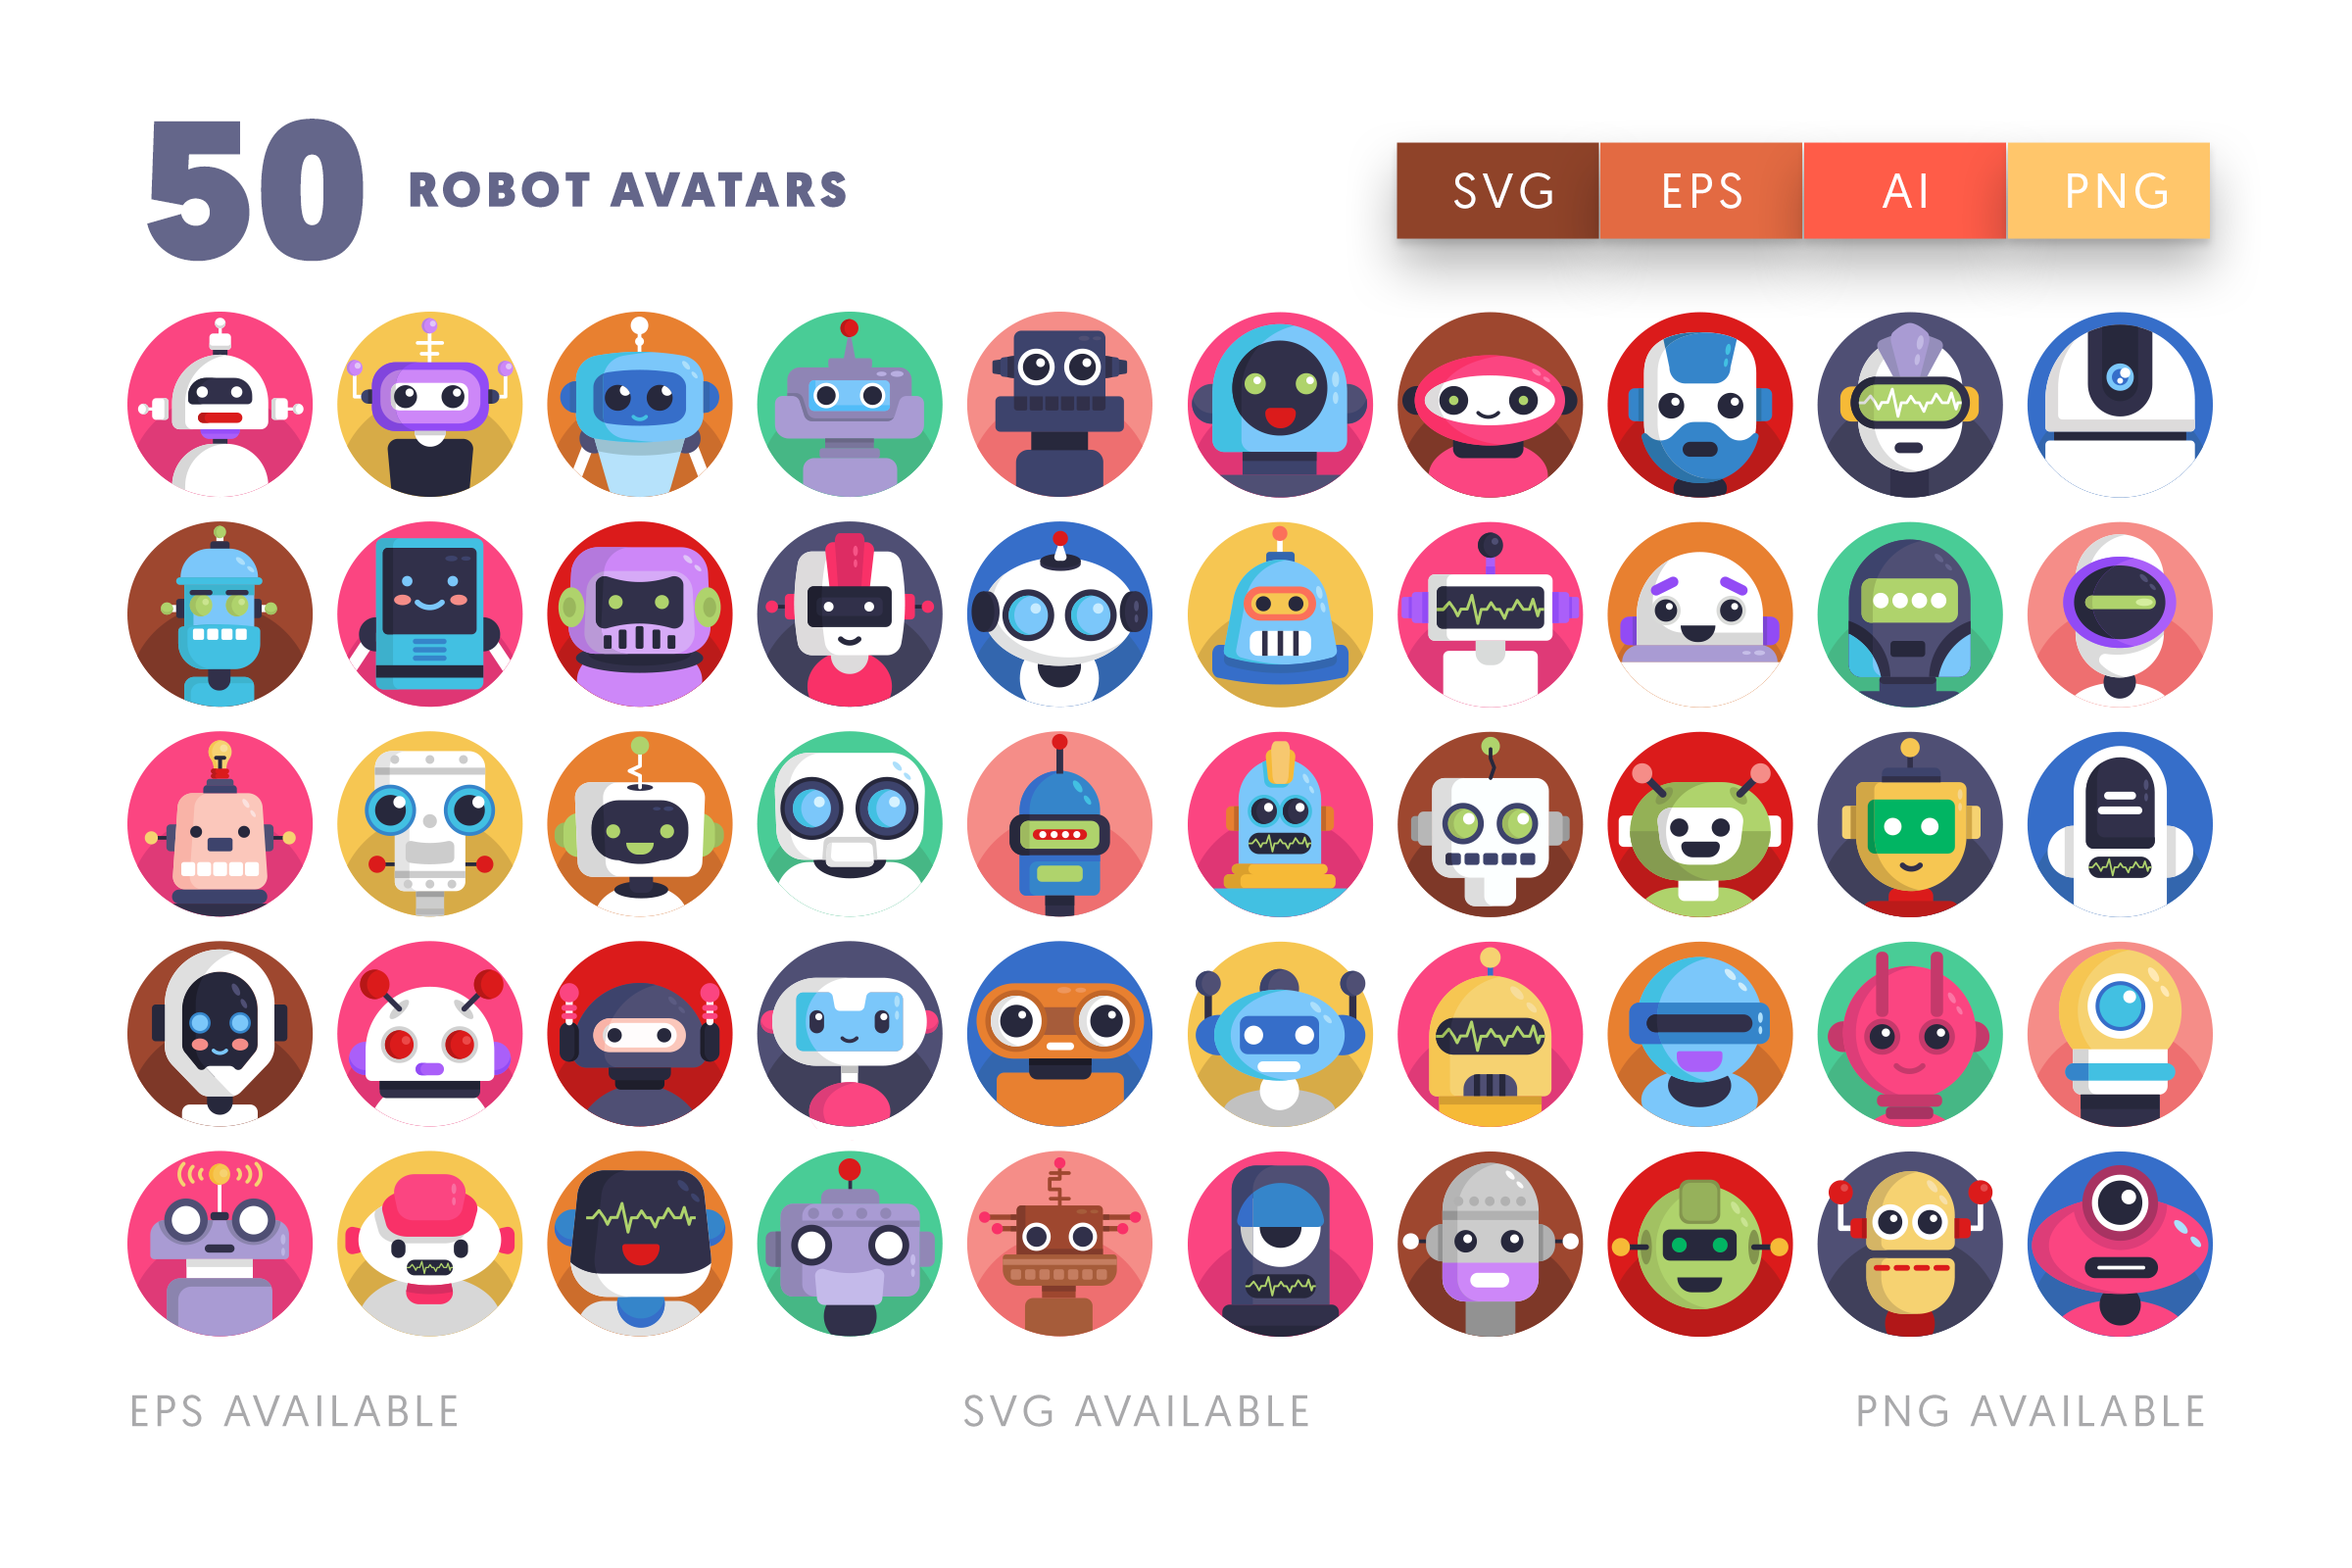 Robot Avatar icons png/svg/eps